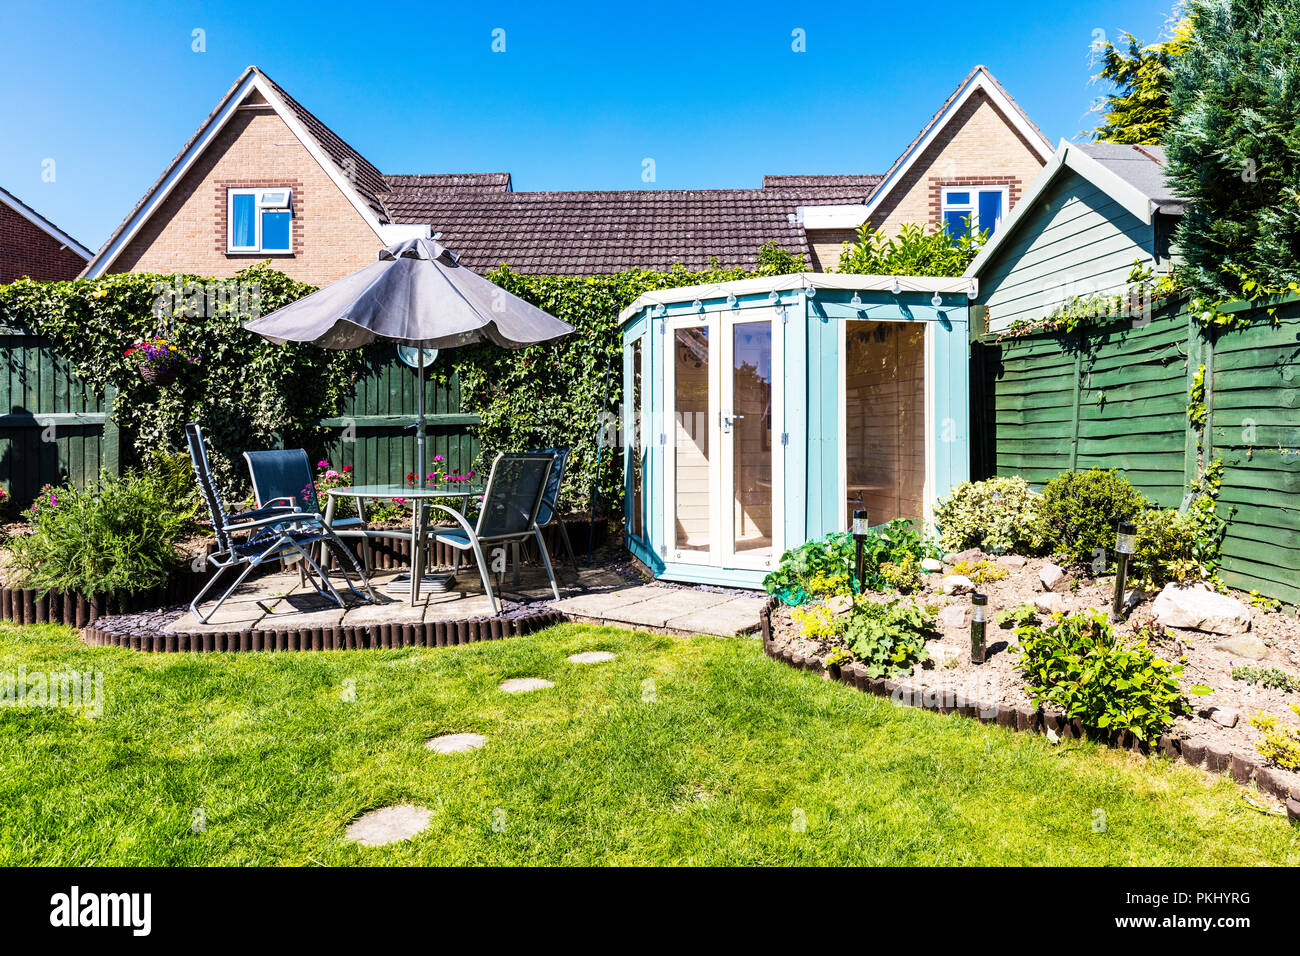 English garden, summer house, patio set, table and chairs outside, fenced garden, stepping stones, umbrella over table, summer houses, UK, England, - Stock Image